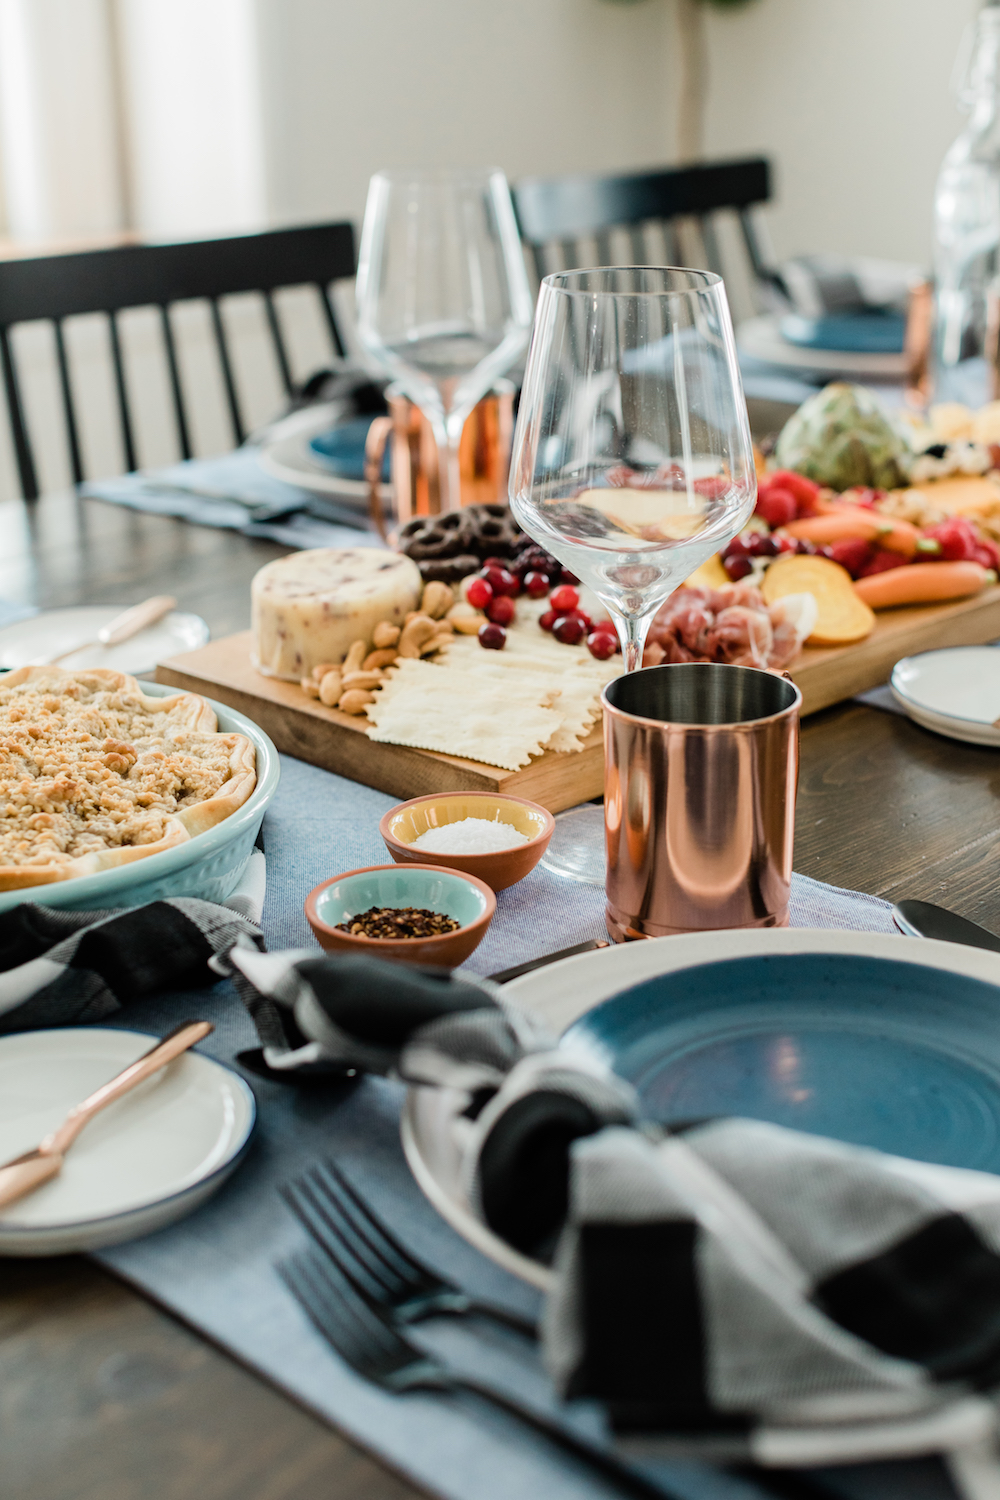 Tips for Simple Thanksgiving Table Decor Tip 1: Set your table the night before if you can, or first thing in the morning after the turkey hits the oven. Bed Bath & Beyond is the best place for all of your holiday hosting needs, from the perfect roasting pan to gorgeous dinnerware, bakeware worthy of transferring right from oven to table, and all the loveliest flatware, glassware and linens to go along with the feast.